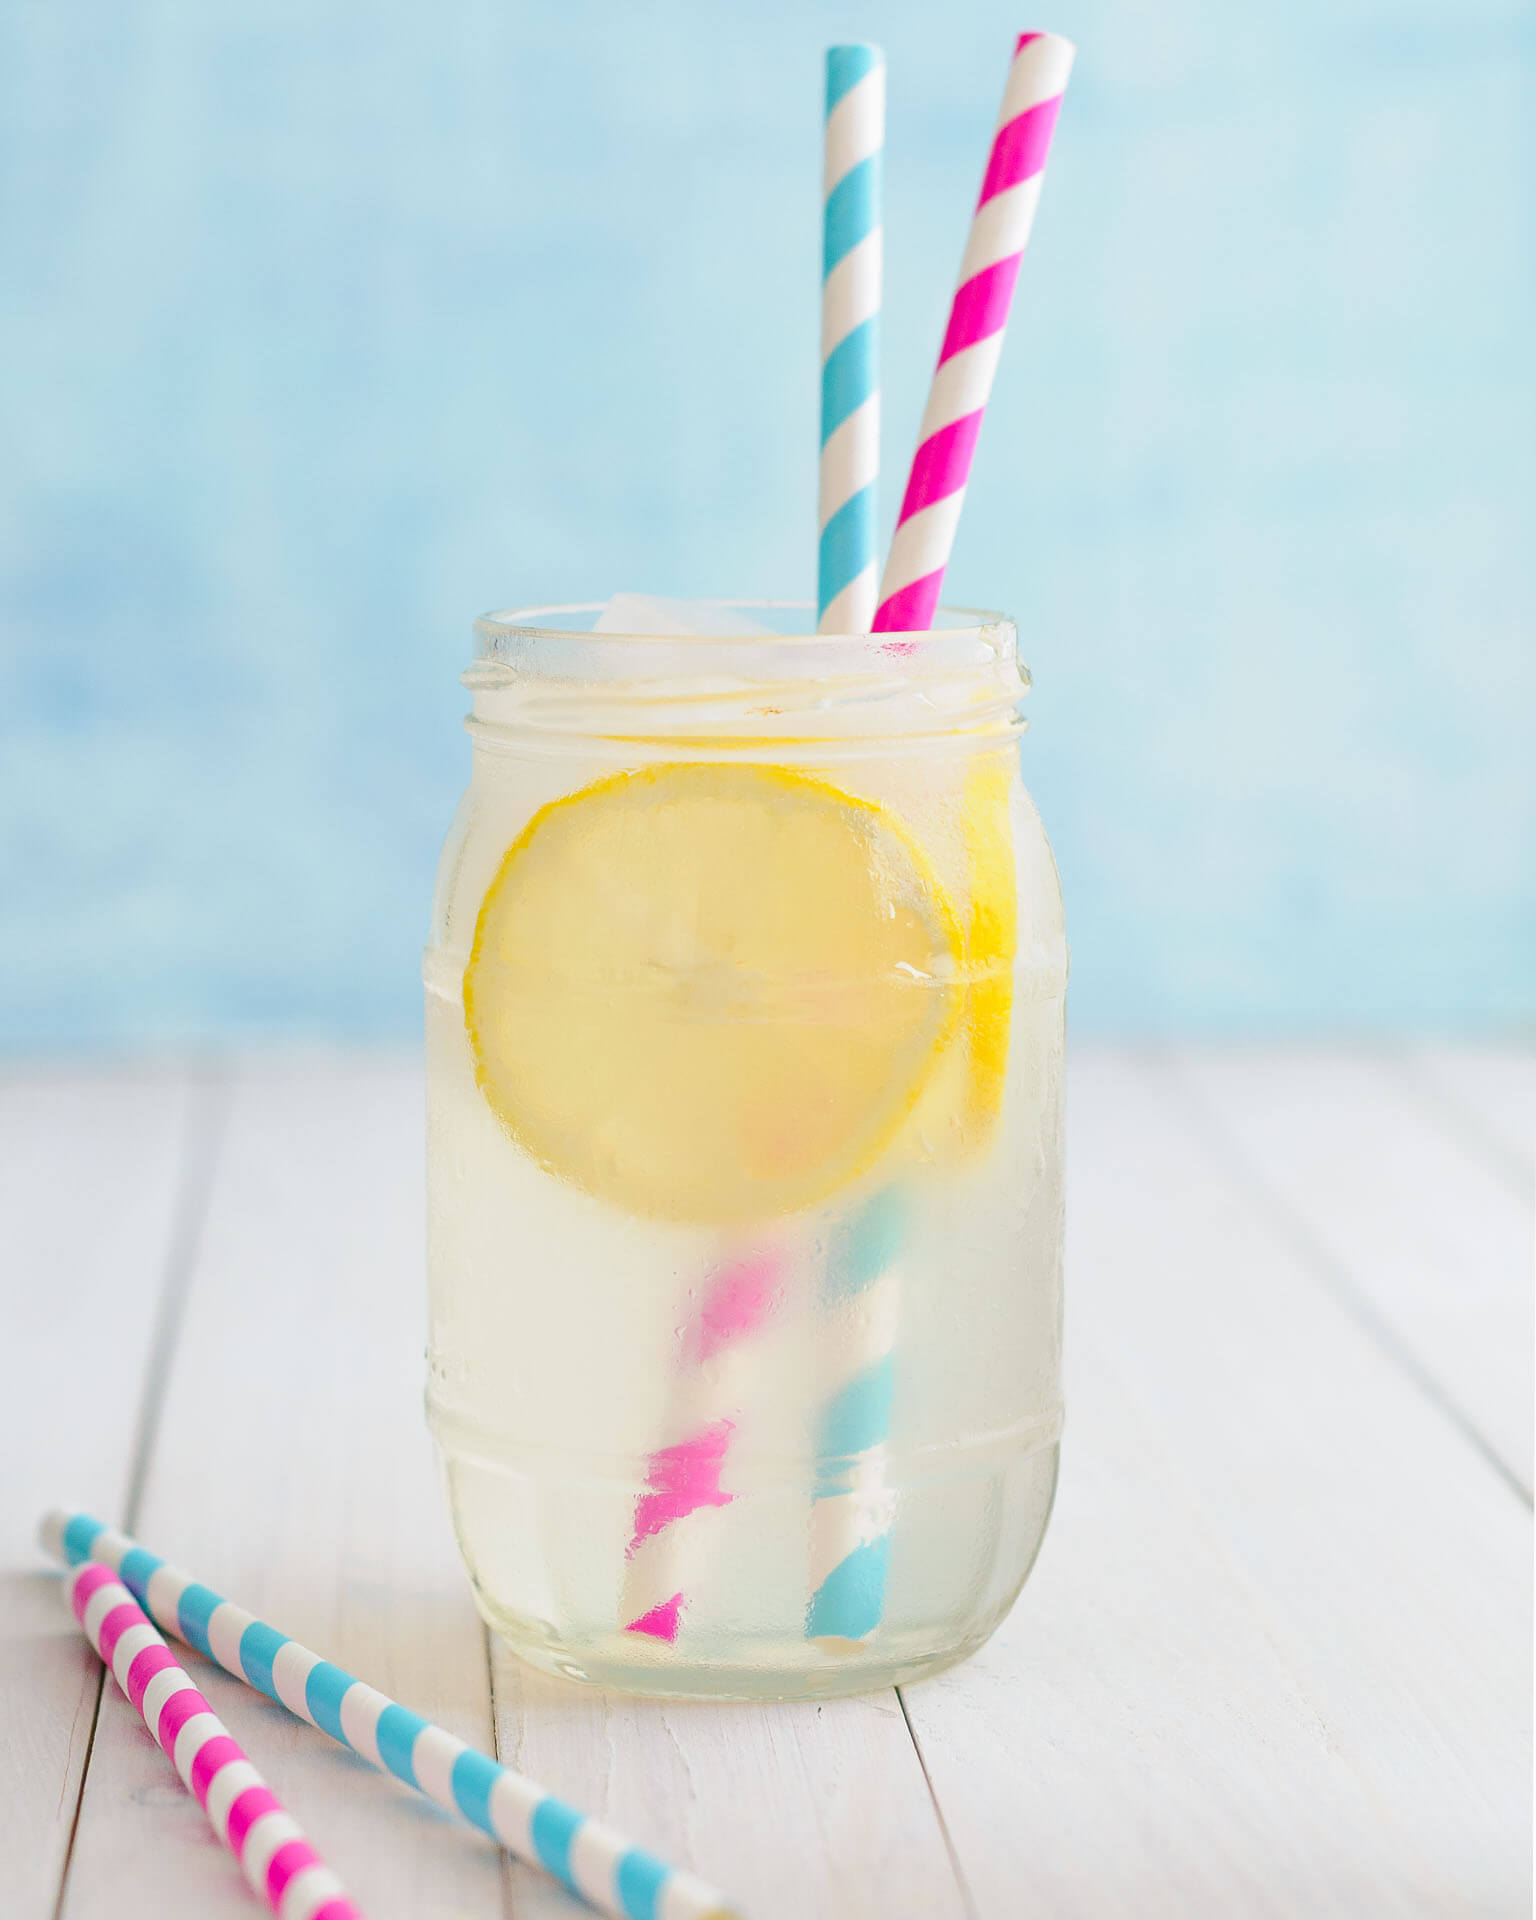 Homemade Limonade